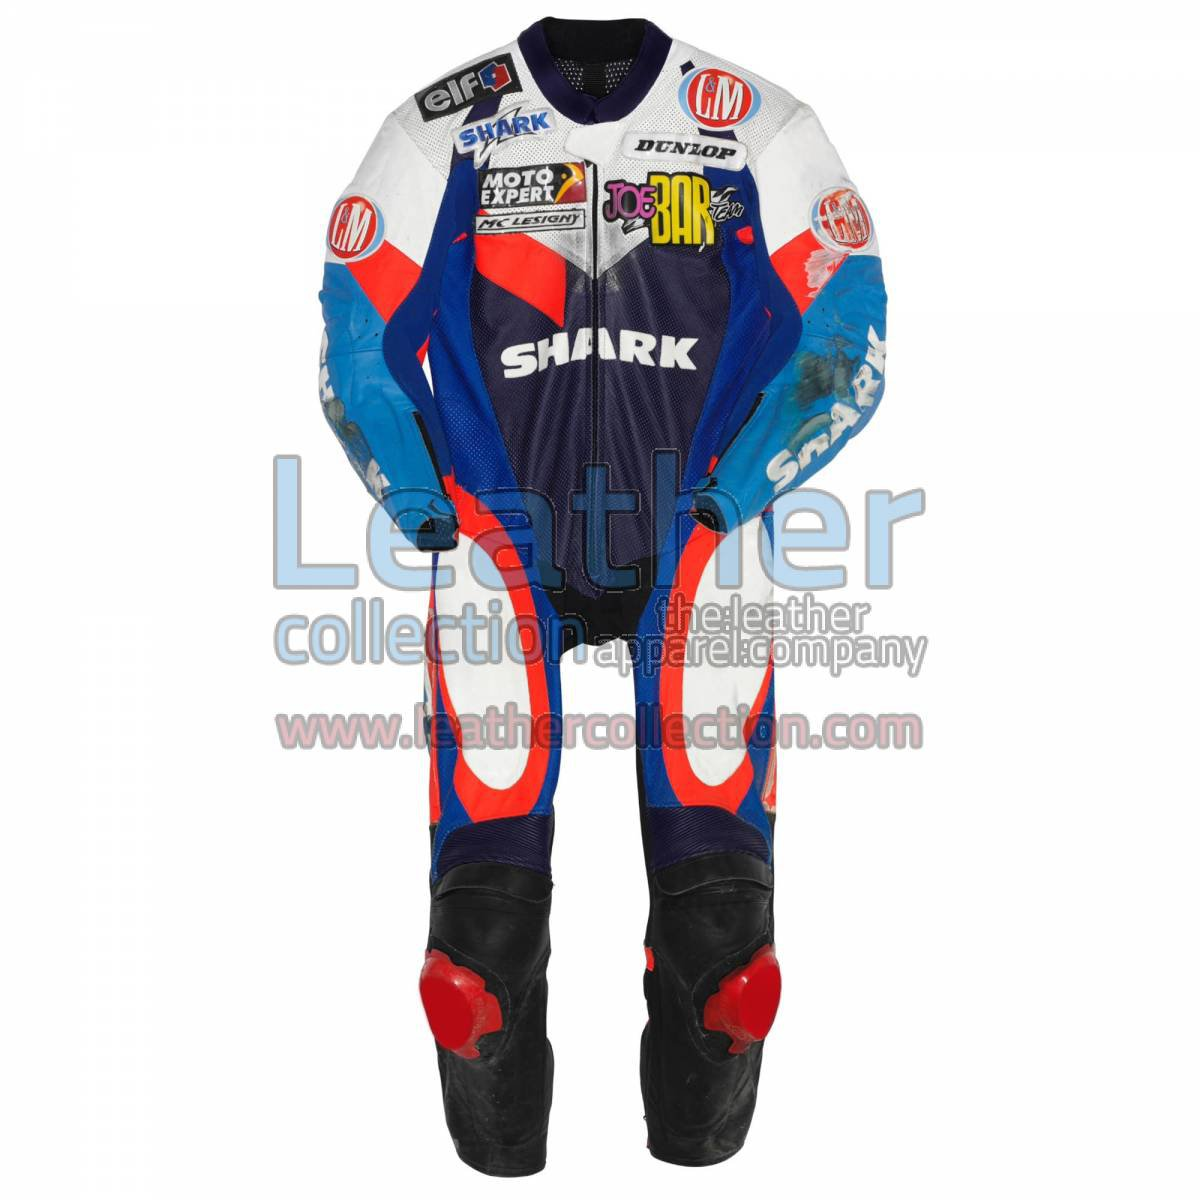 Randi De Puniet Aprilia GP 1999 Leather Suit